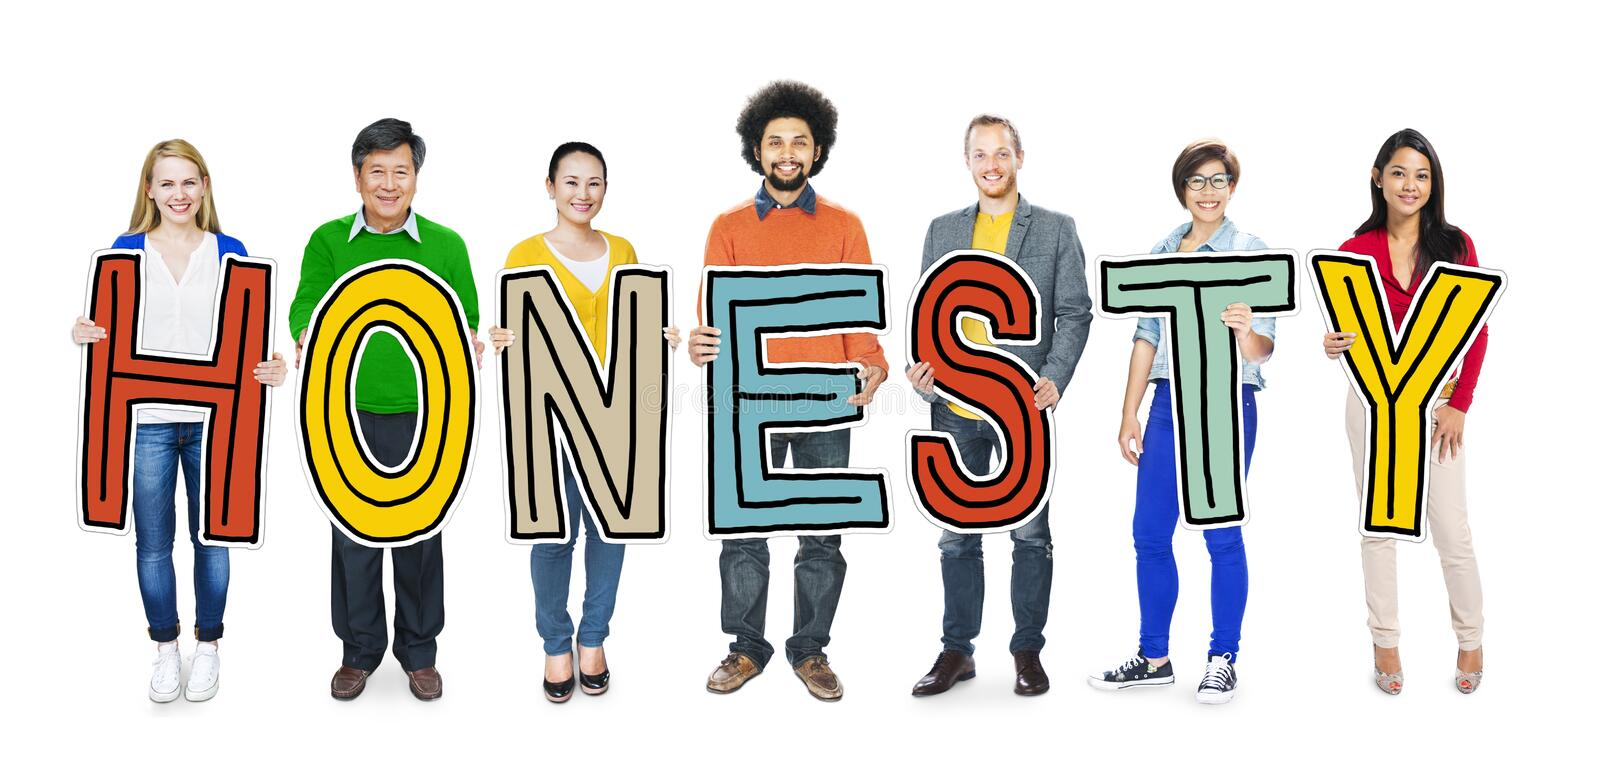 Group of Diverse People Holding Letter Honesty stock image